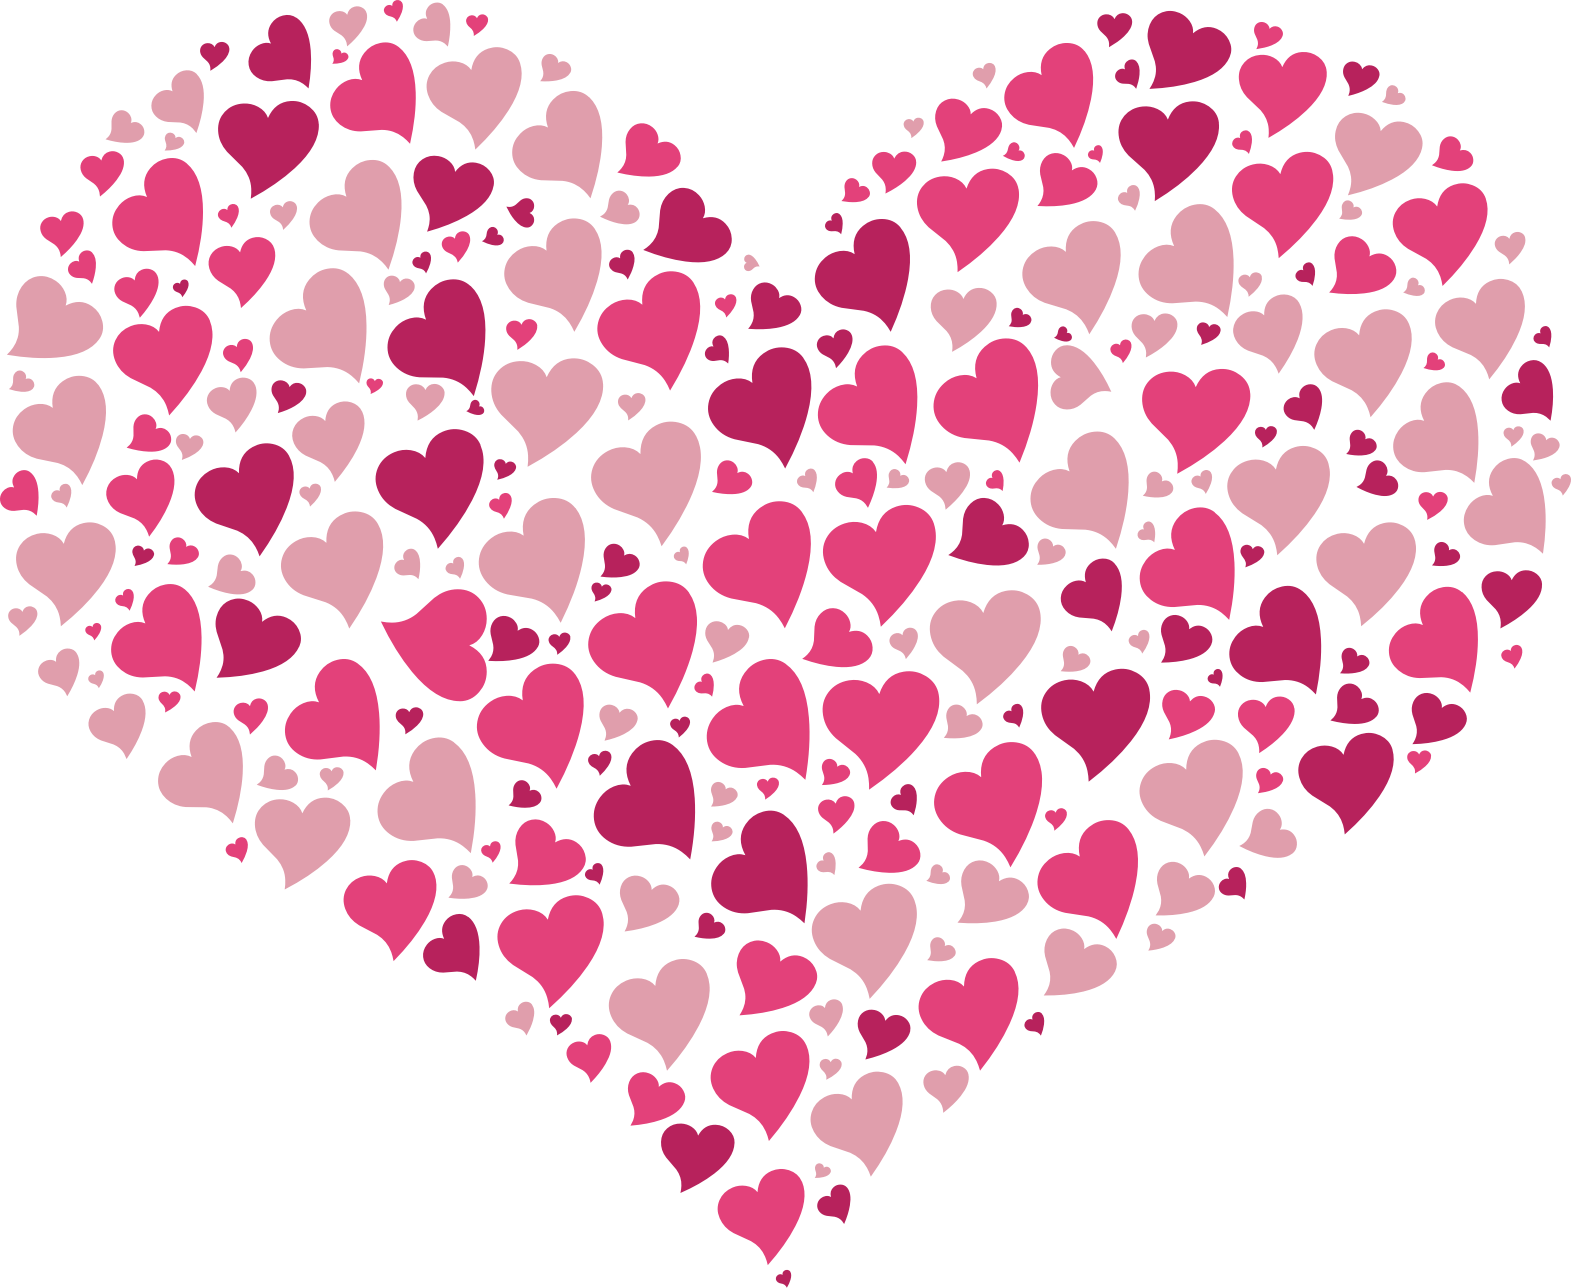 Pattern heart clipart graphic free Clipart - Hearts in Heart graphic free